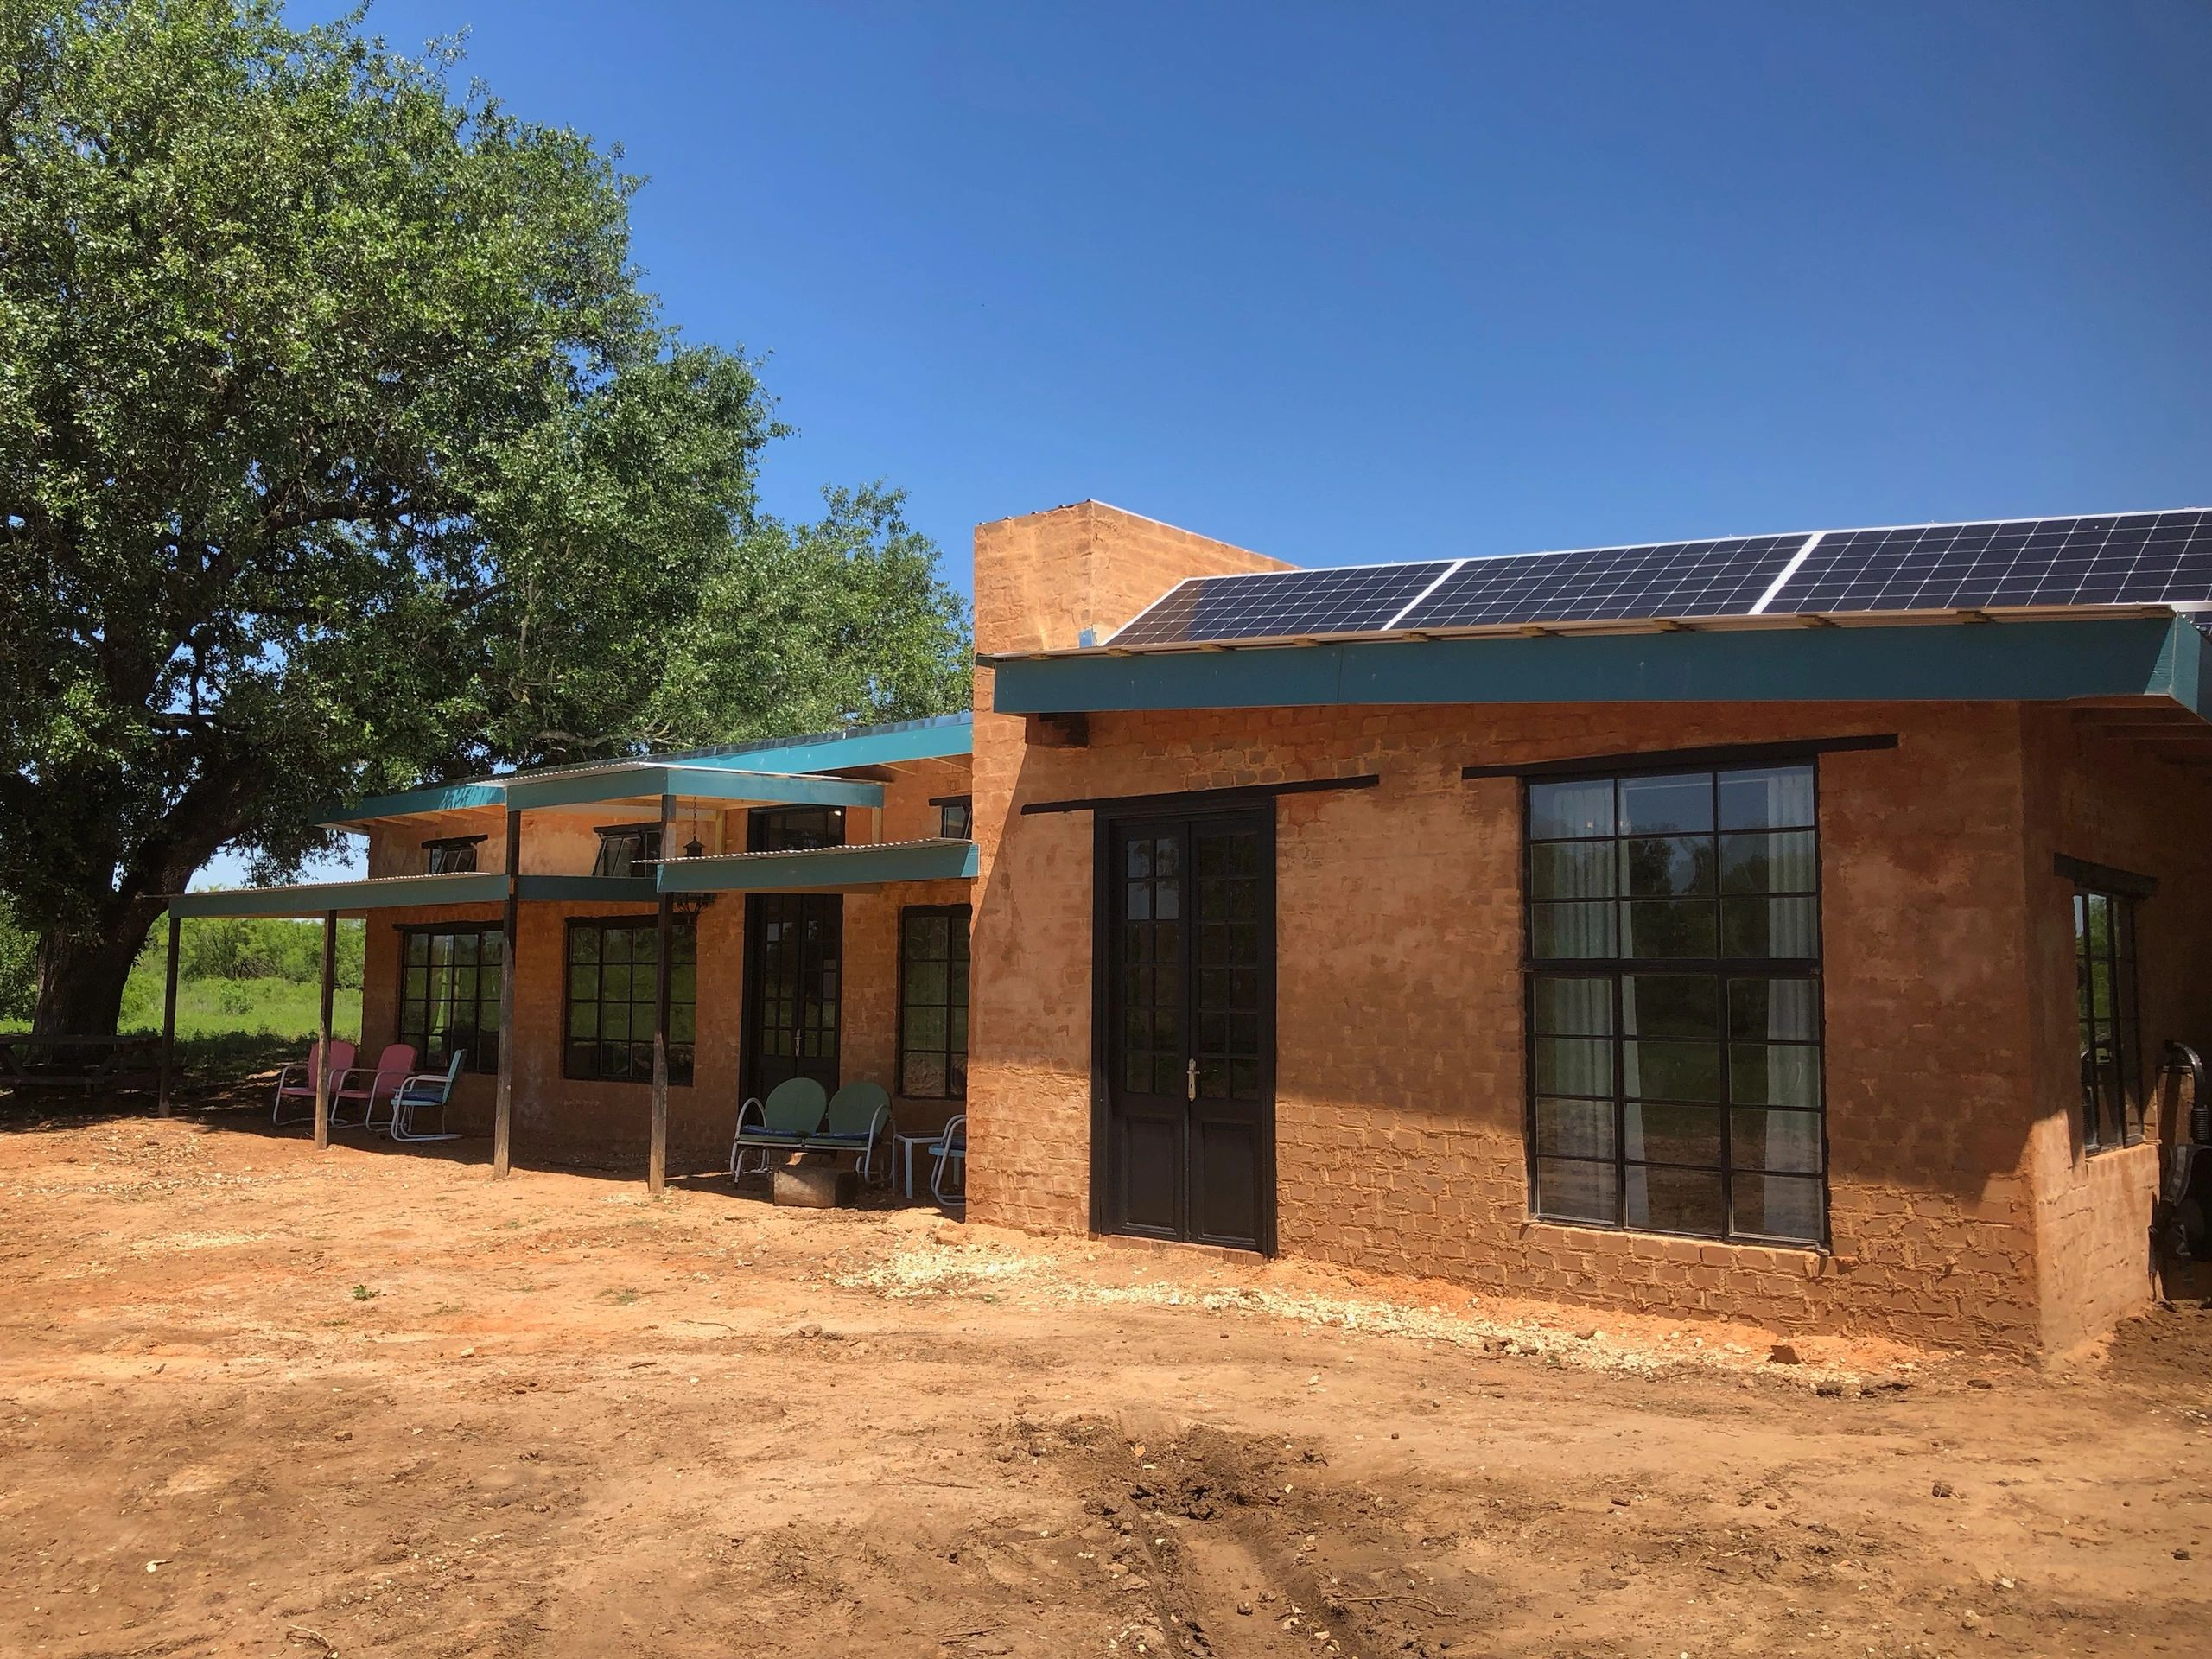 AECT's off-grid CEB home